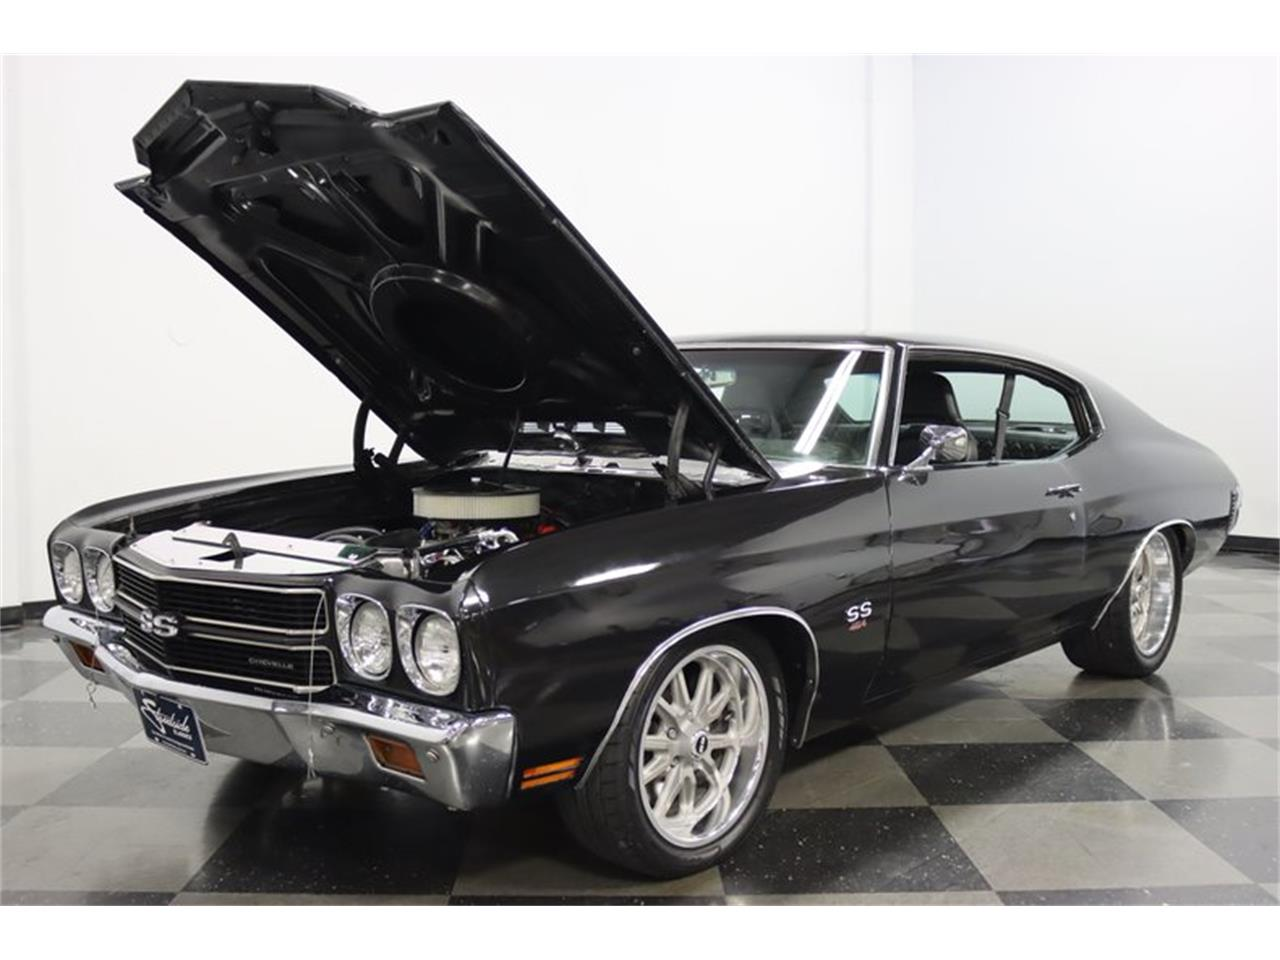 1970 Chevrolet Chevelle (CC-1421269) for sale in Ft Worth, Texas